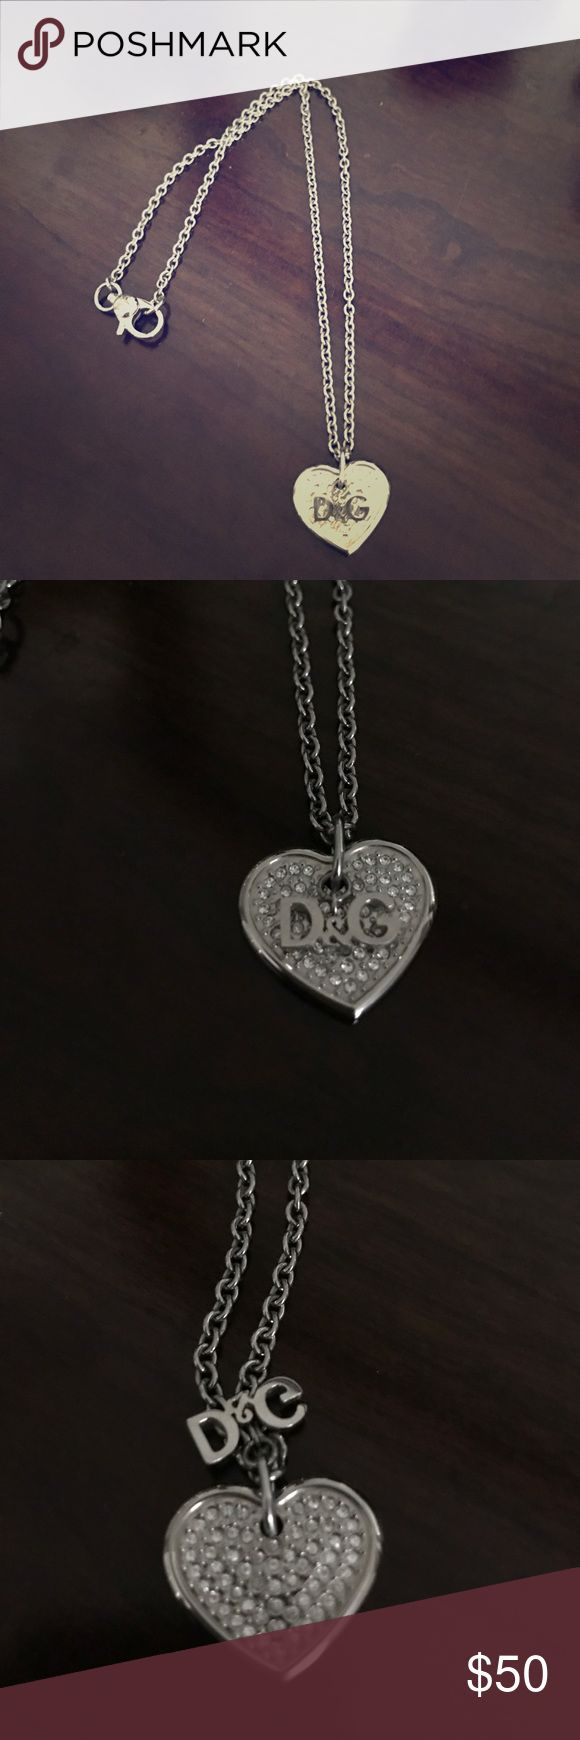 D&G pave style heart necklace Like Brand New - Never worn Jewelry Necklaces